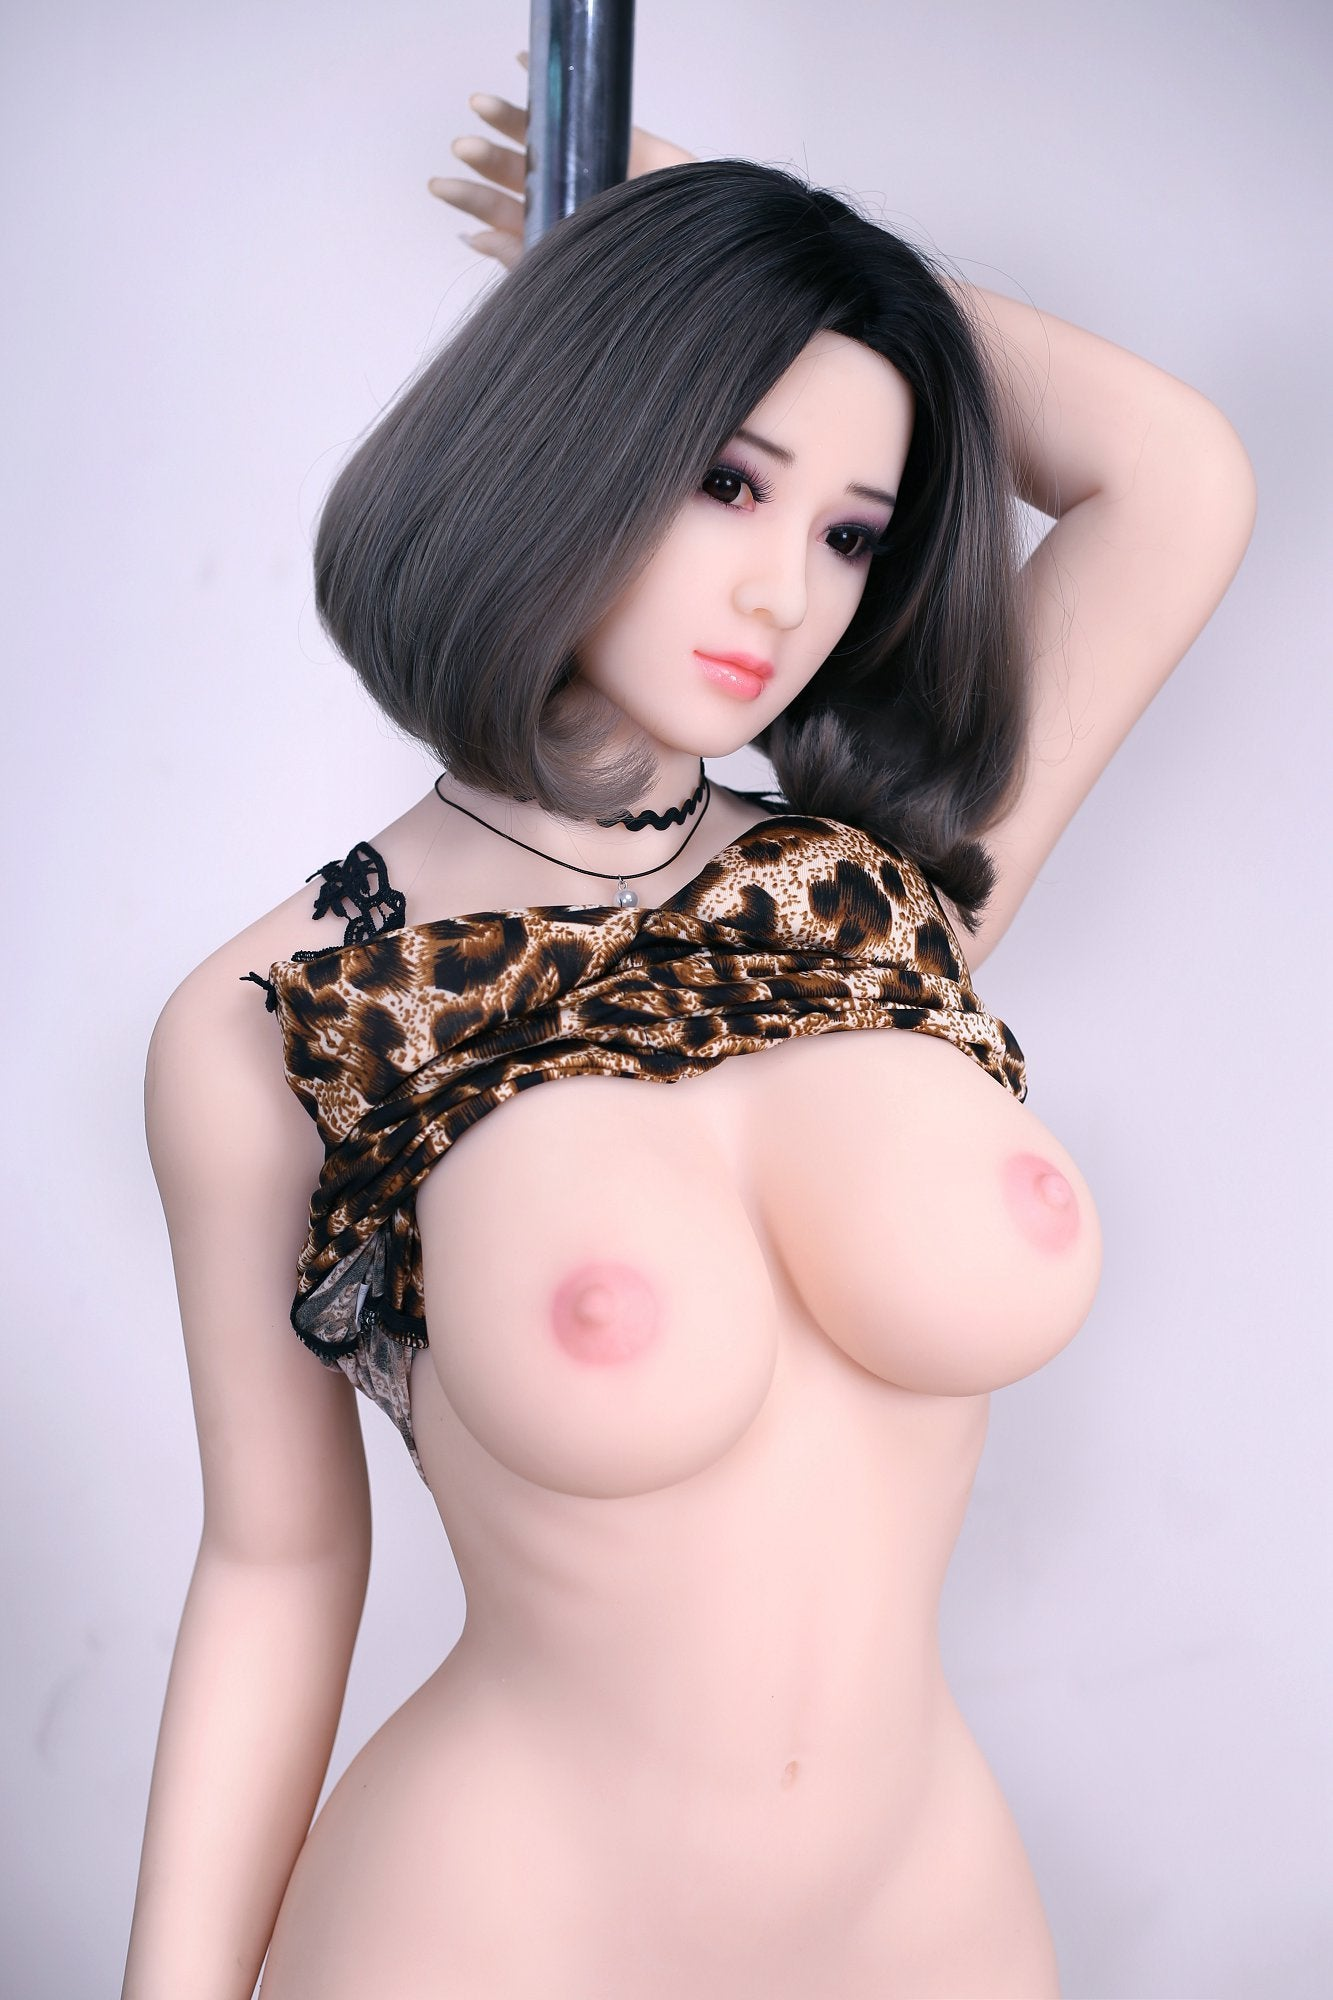 yasmine 158cm af black hair medium tits athletic tpe sex doll(10)